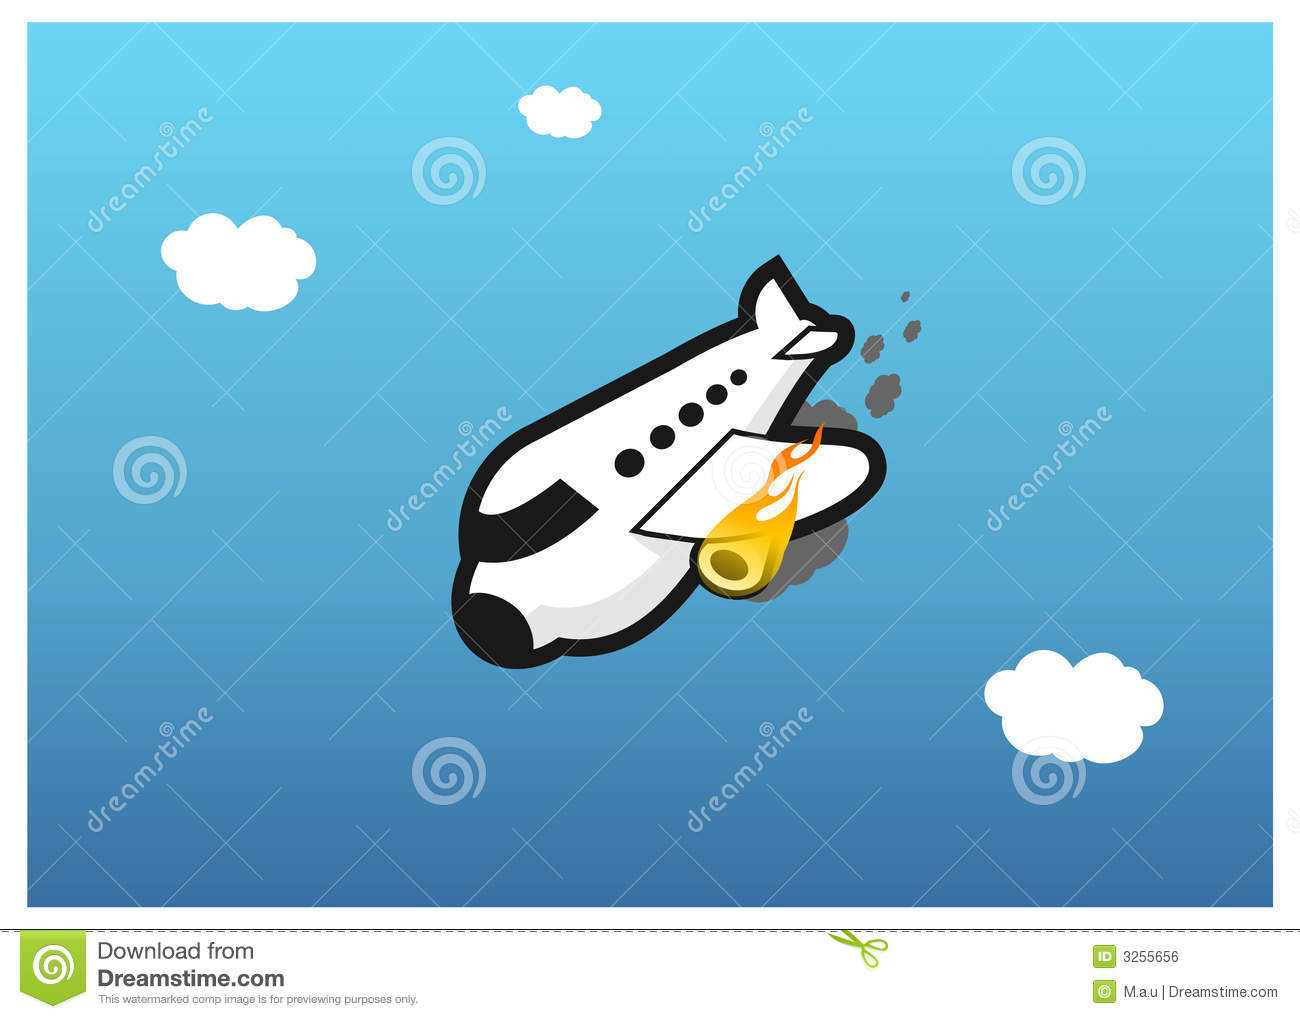 Plane On Fire Royalty Free Stock Image - Image: 3255656